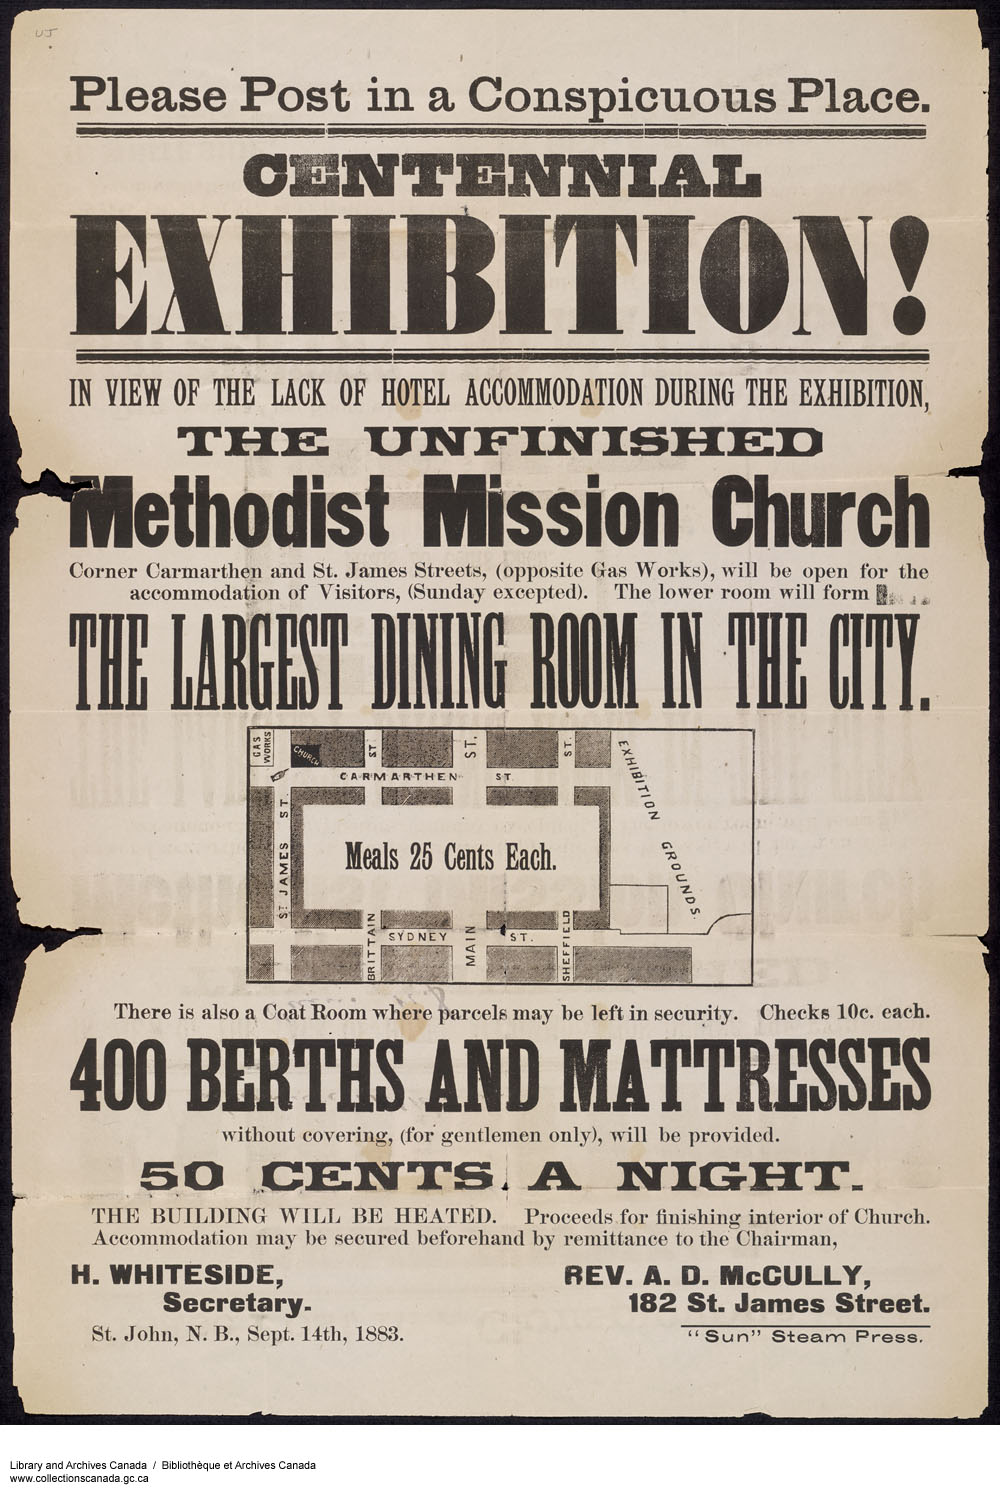 Please Post in a Conspicuous Place... Centennial Exhibition Methodist Mission. (item 1)